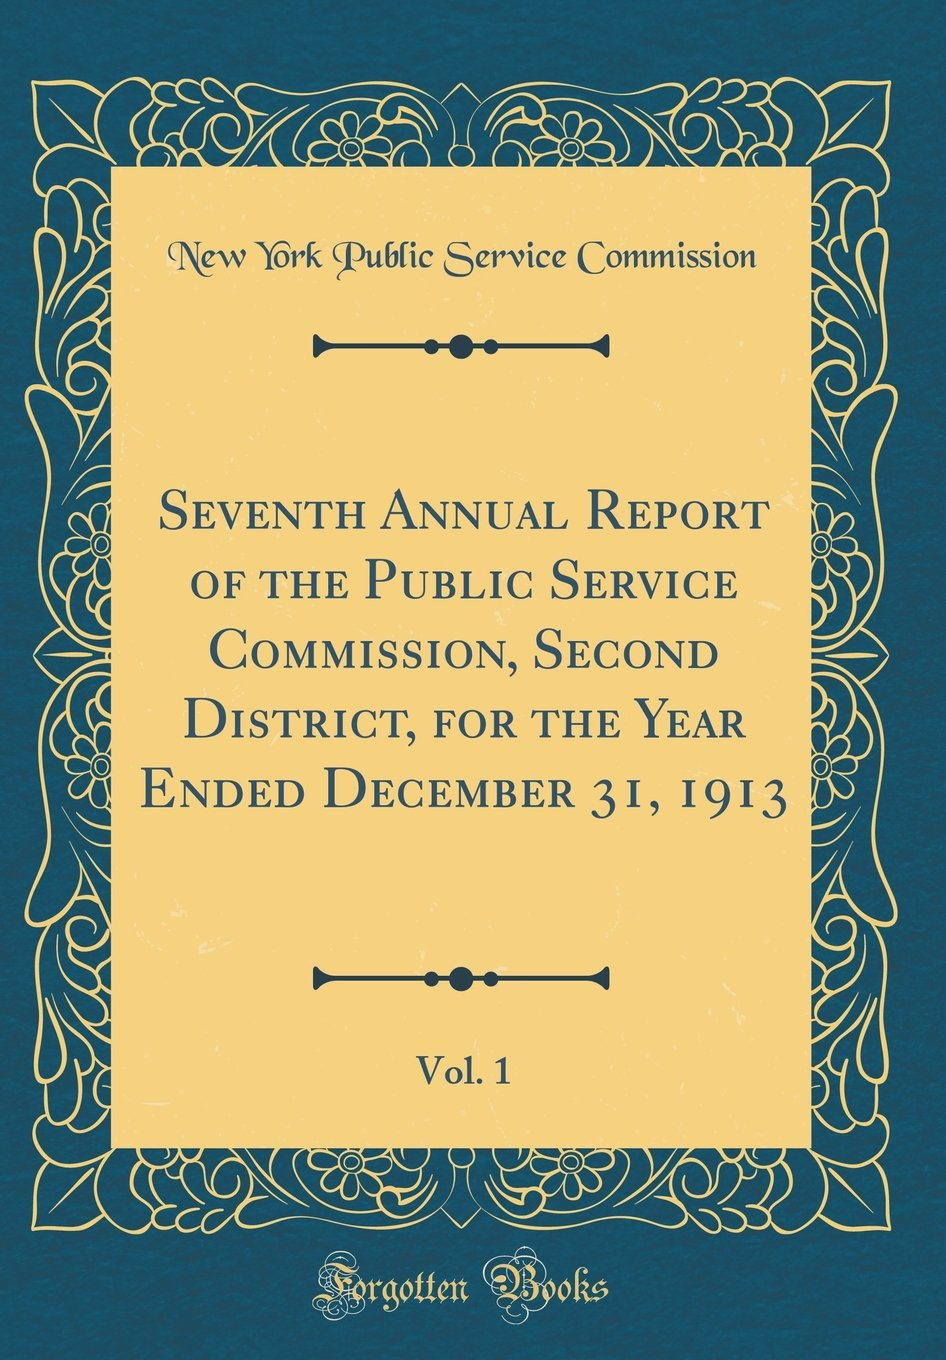 Download Seventh Annual Report of the Public Service Commission, Second District, for the Year Ended December 31, 1913, Vol. 1 (Classic Reprint) ebook